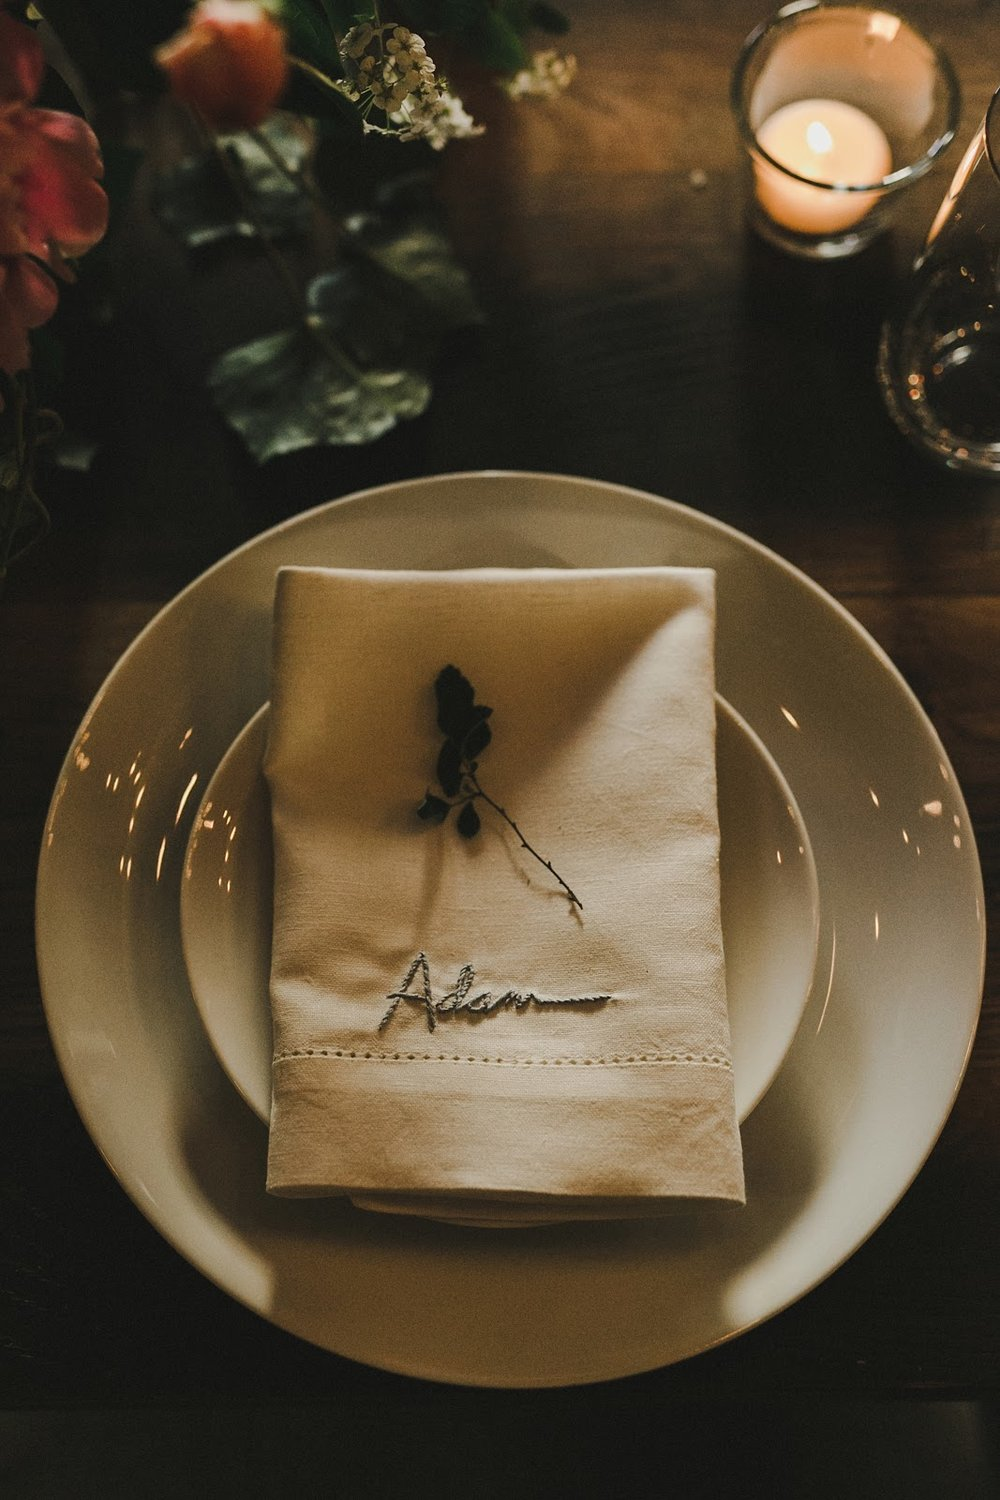 HOWE ABOUT FOREVA - Vancouver urban woodshop wedding by Shari + Mike photographers- hand embroidered napkins